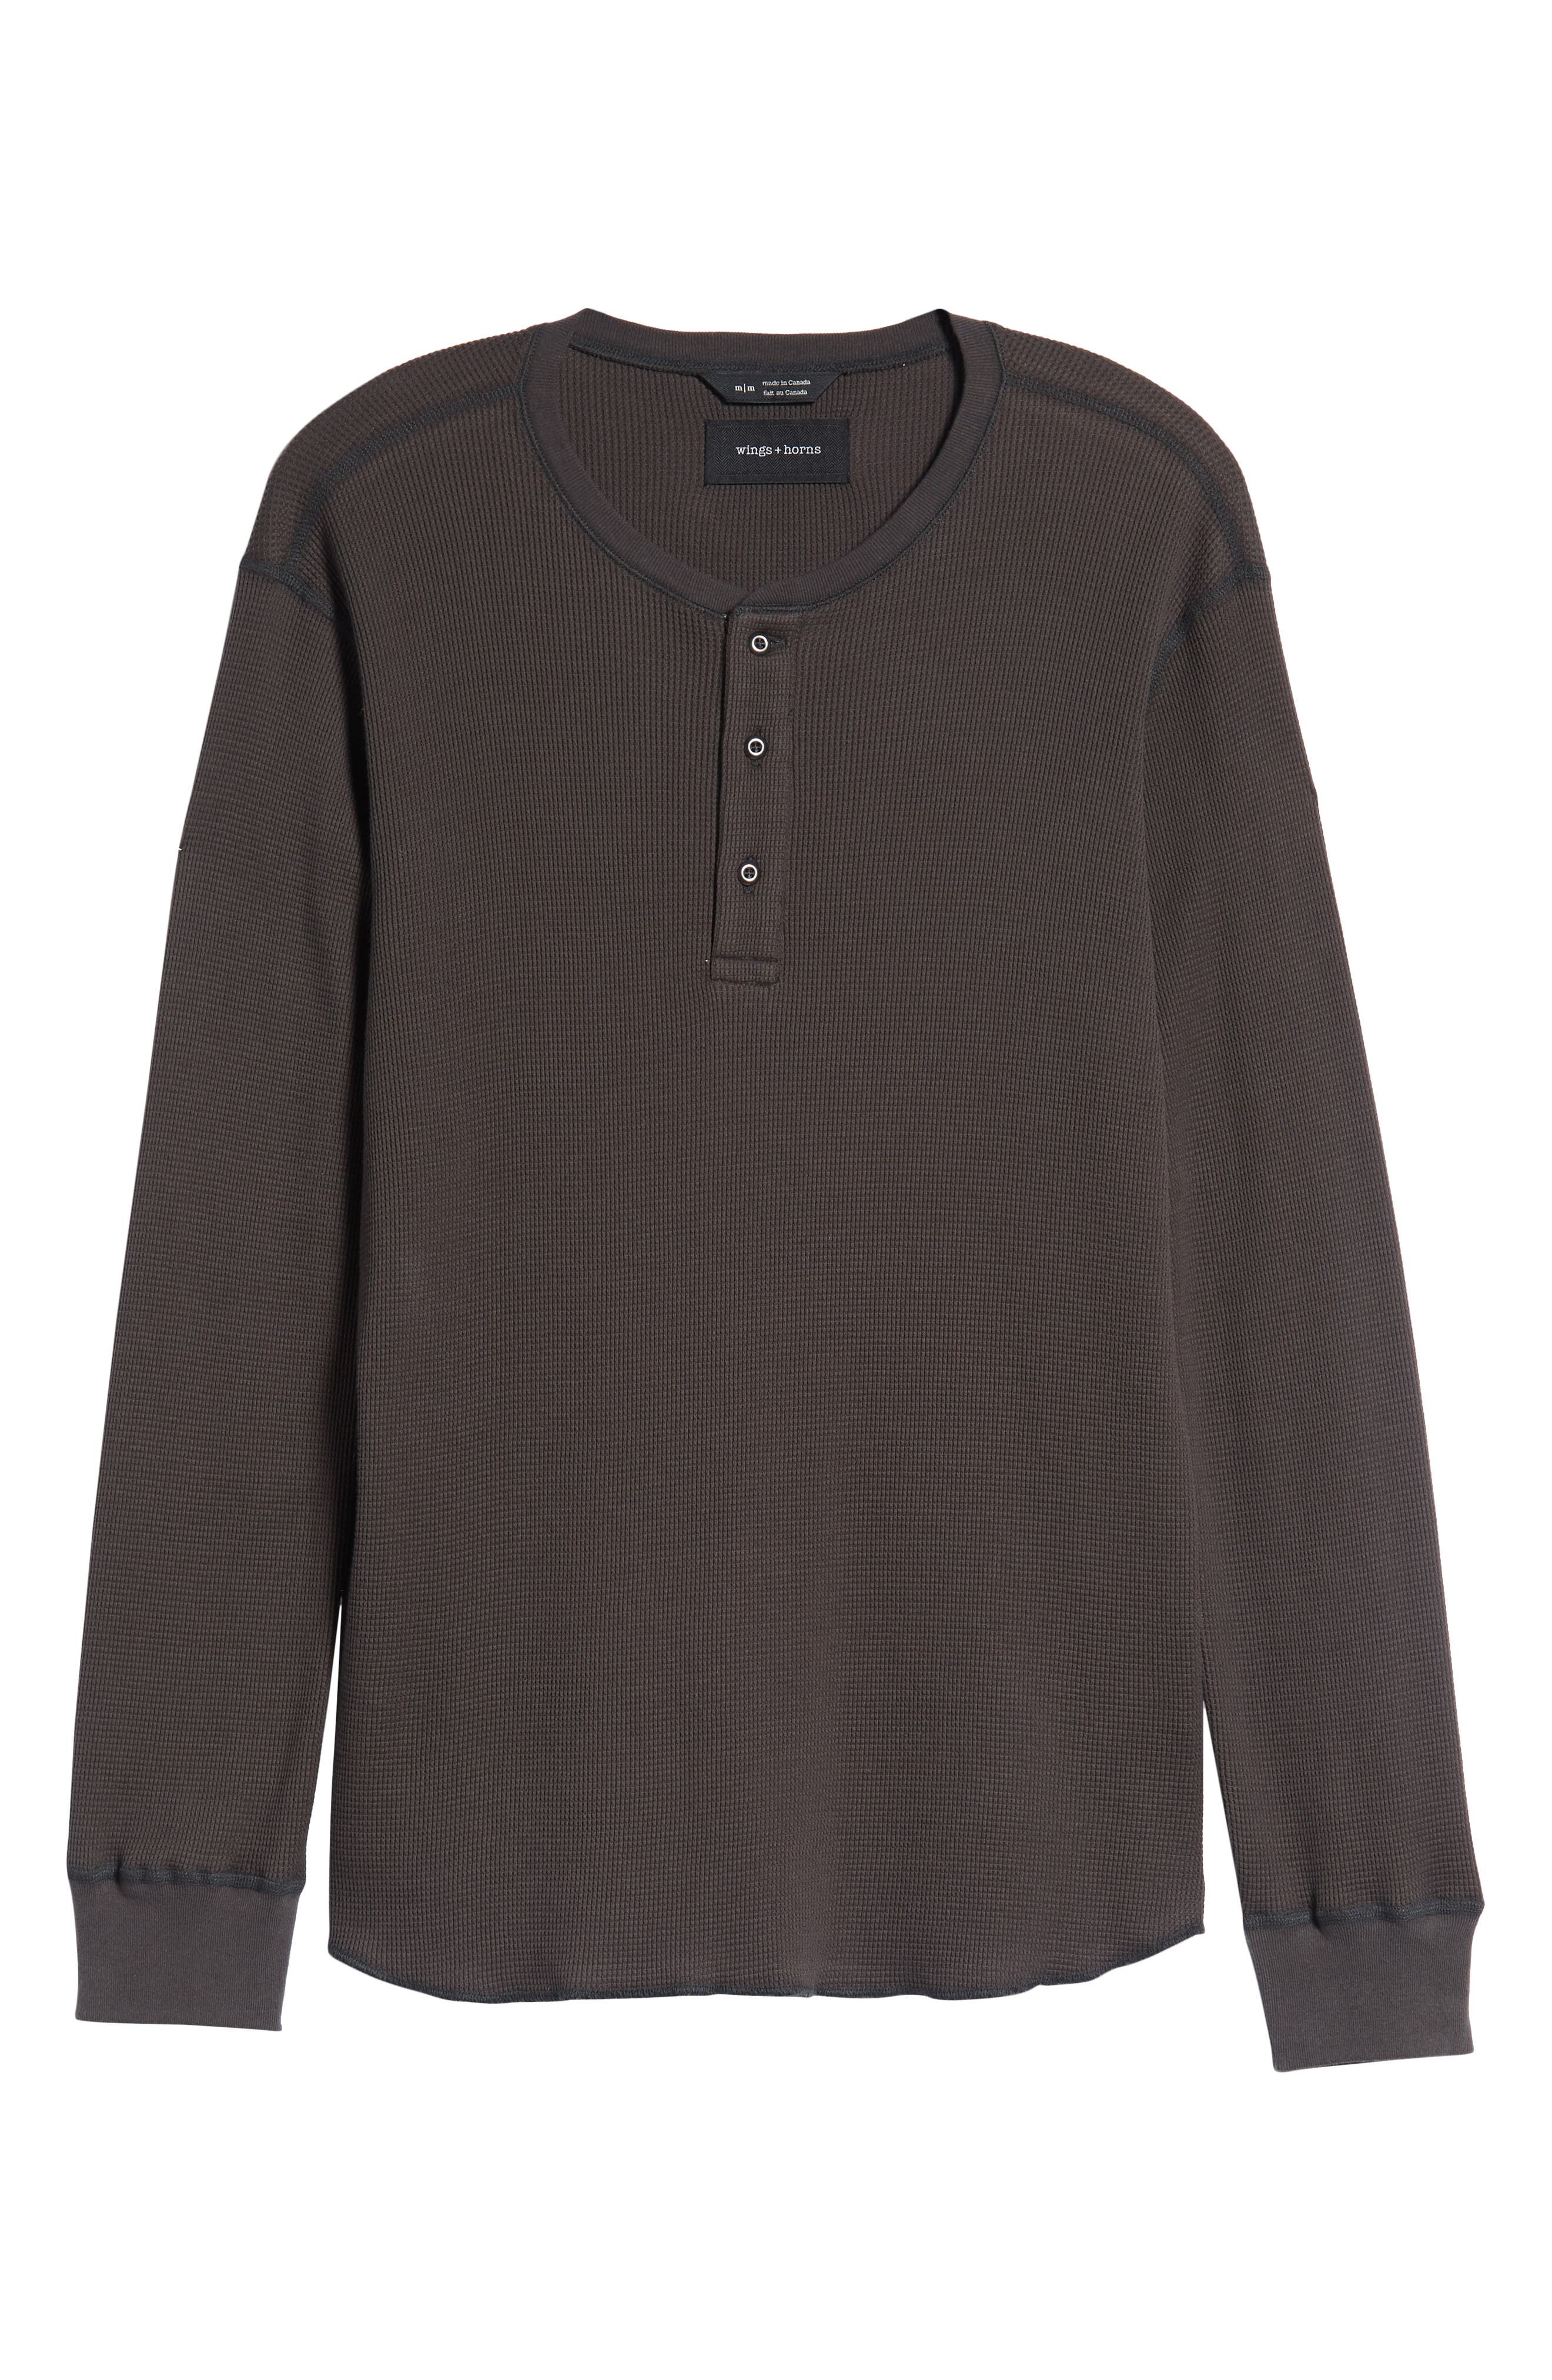 WINGS + HORNS,                             Long Sleeve Thermal Henley,                             Alternate thumbnail 6, color,                             STONE